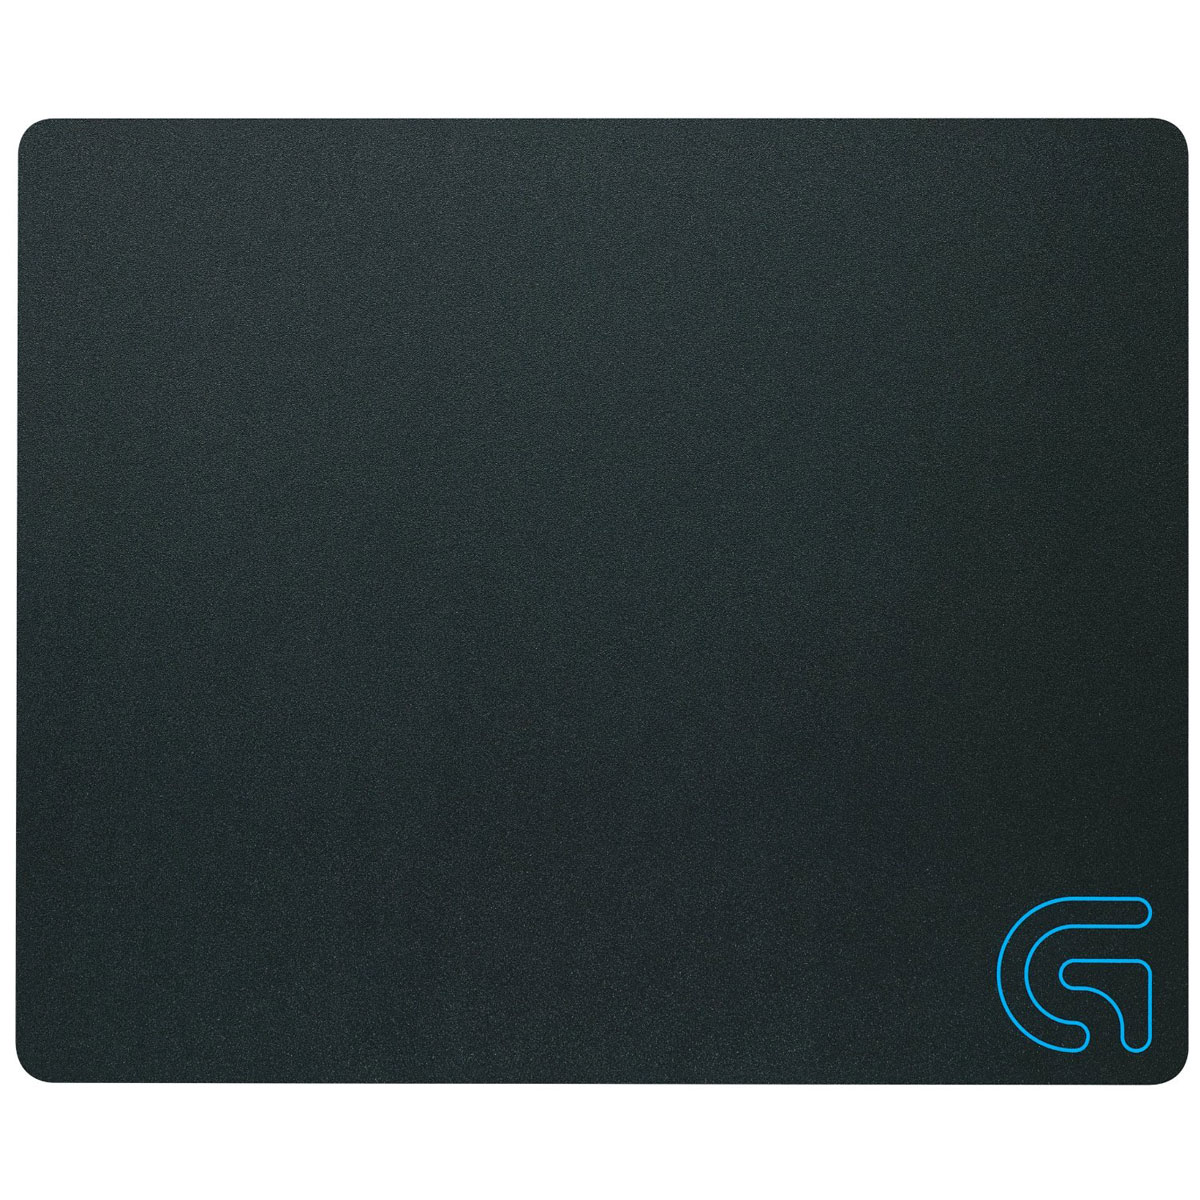 logitech g440 hard gaming mouse pad tapis de souris. Black Bedroom Furniture Sets. Home Design Ideas